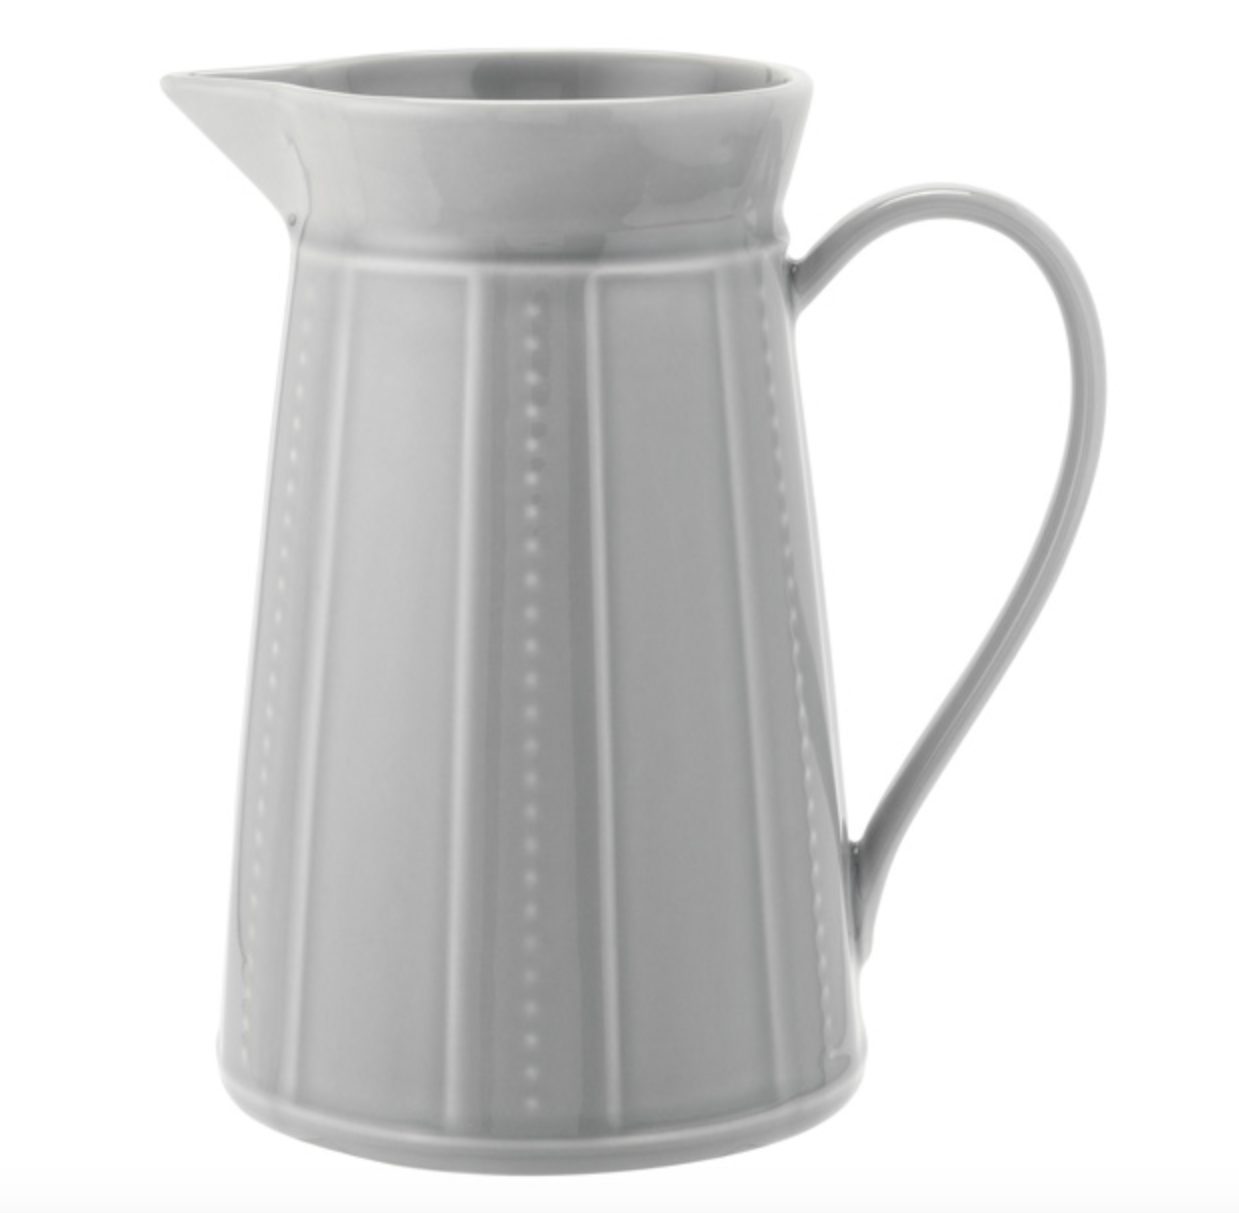 The 'Parisian Maison' grey ceramic jug from Sainsbury's Home collection. £12.